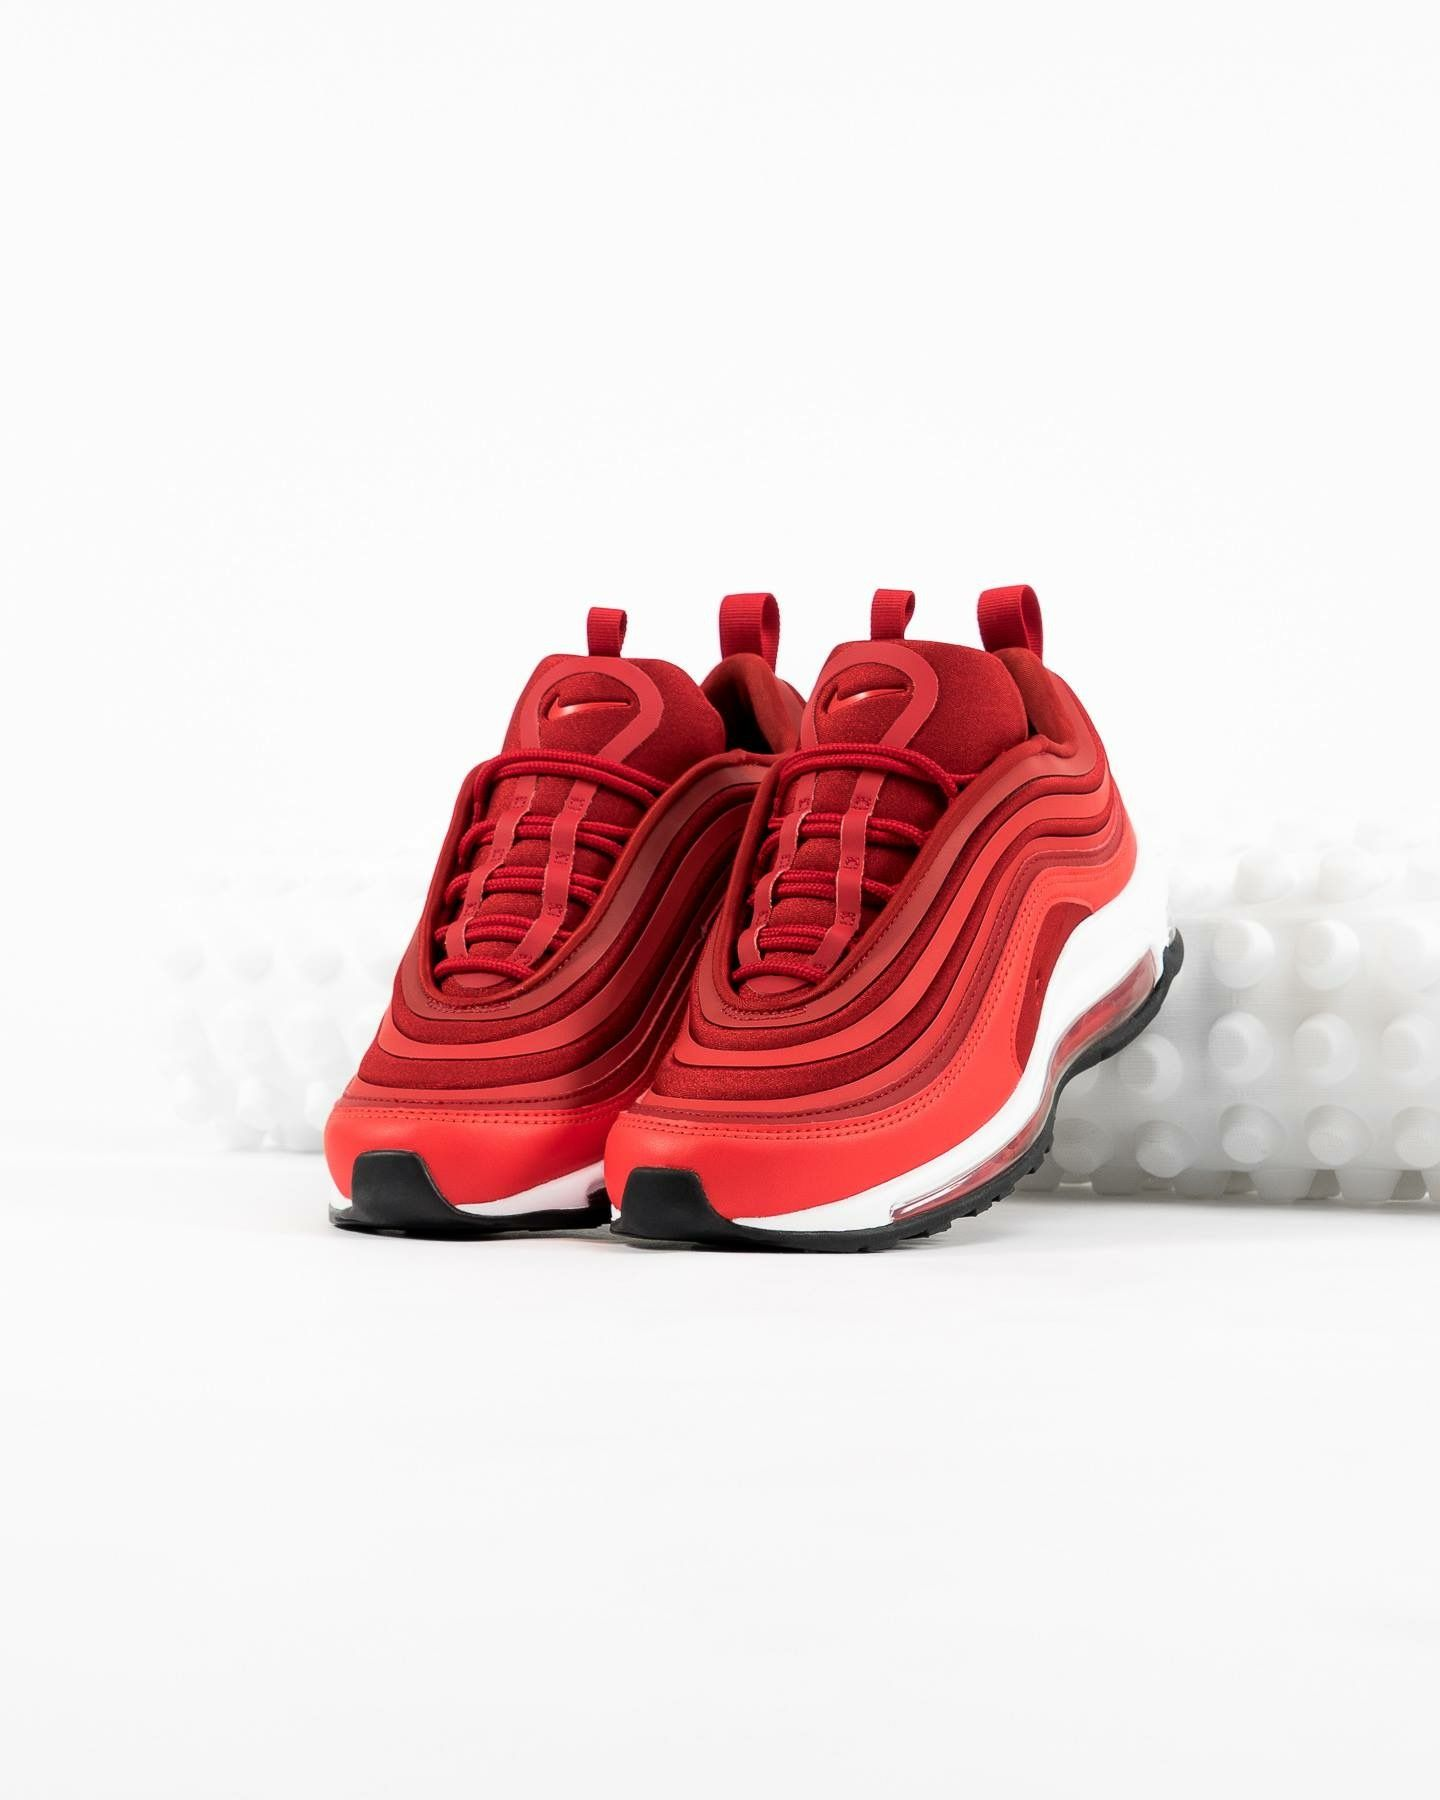 e3d77a7a1f Nike Air Max 97 Ultra: Red | Nike shoes in 2019 | Sneakers nike ...